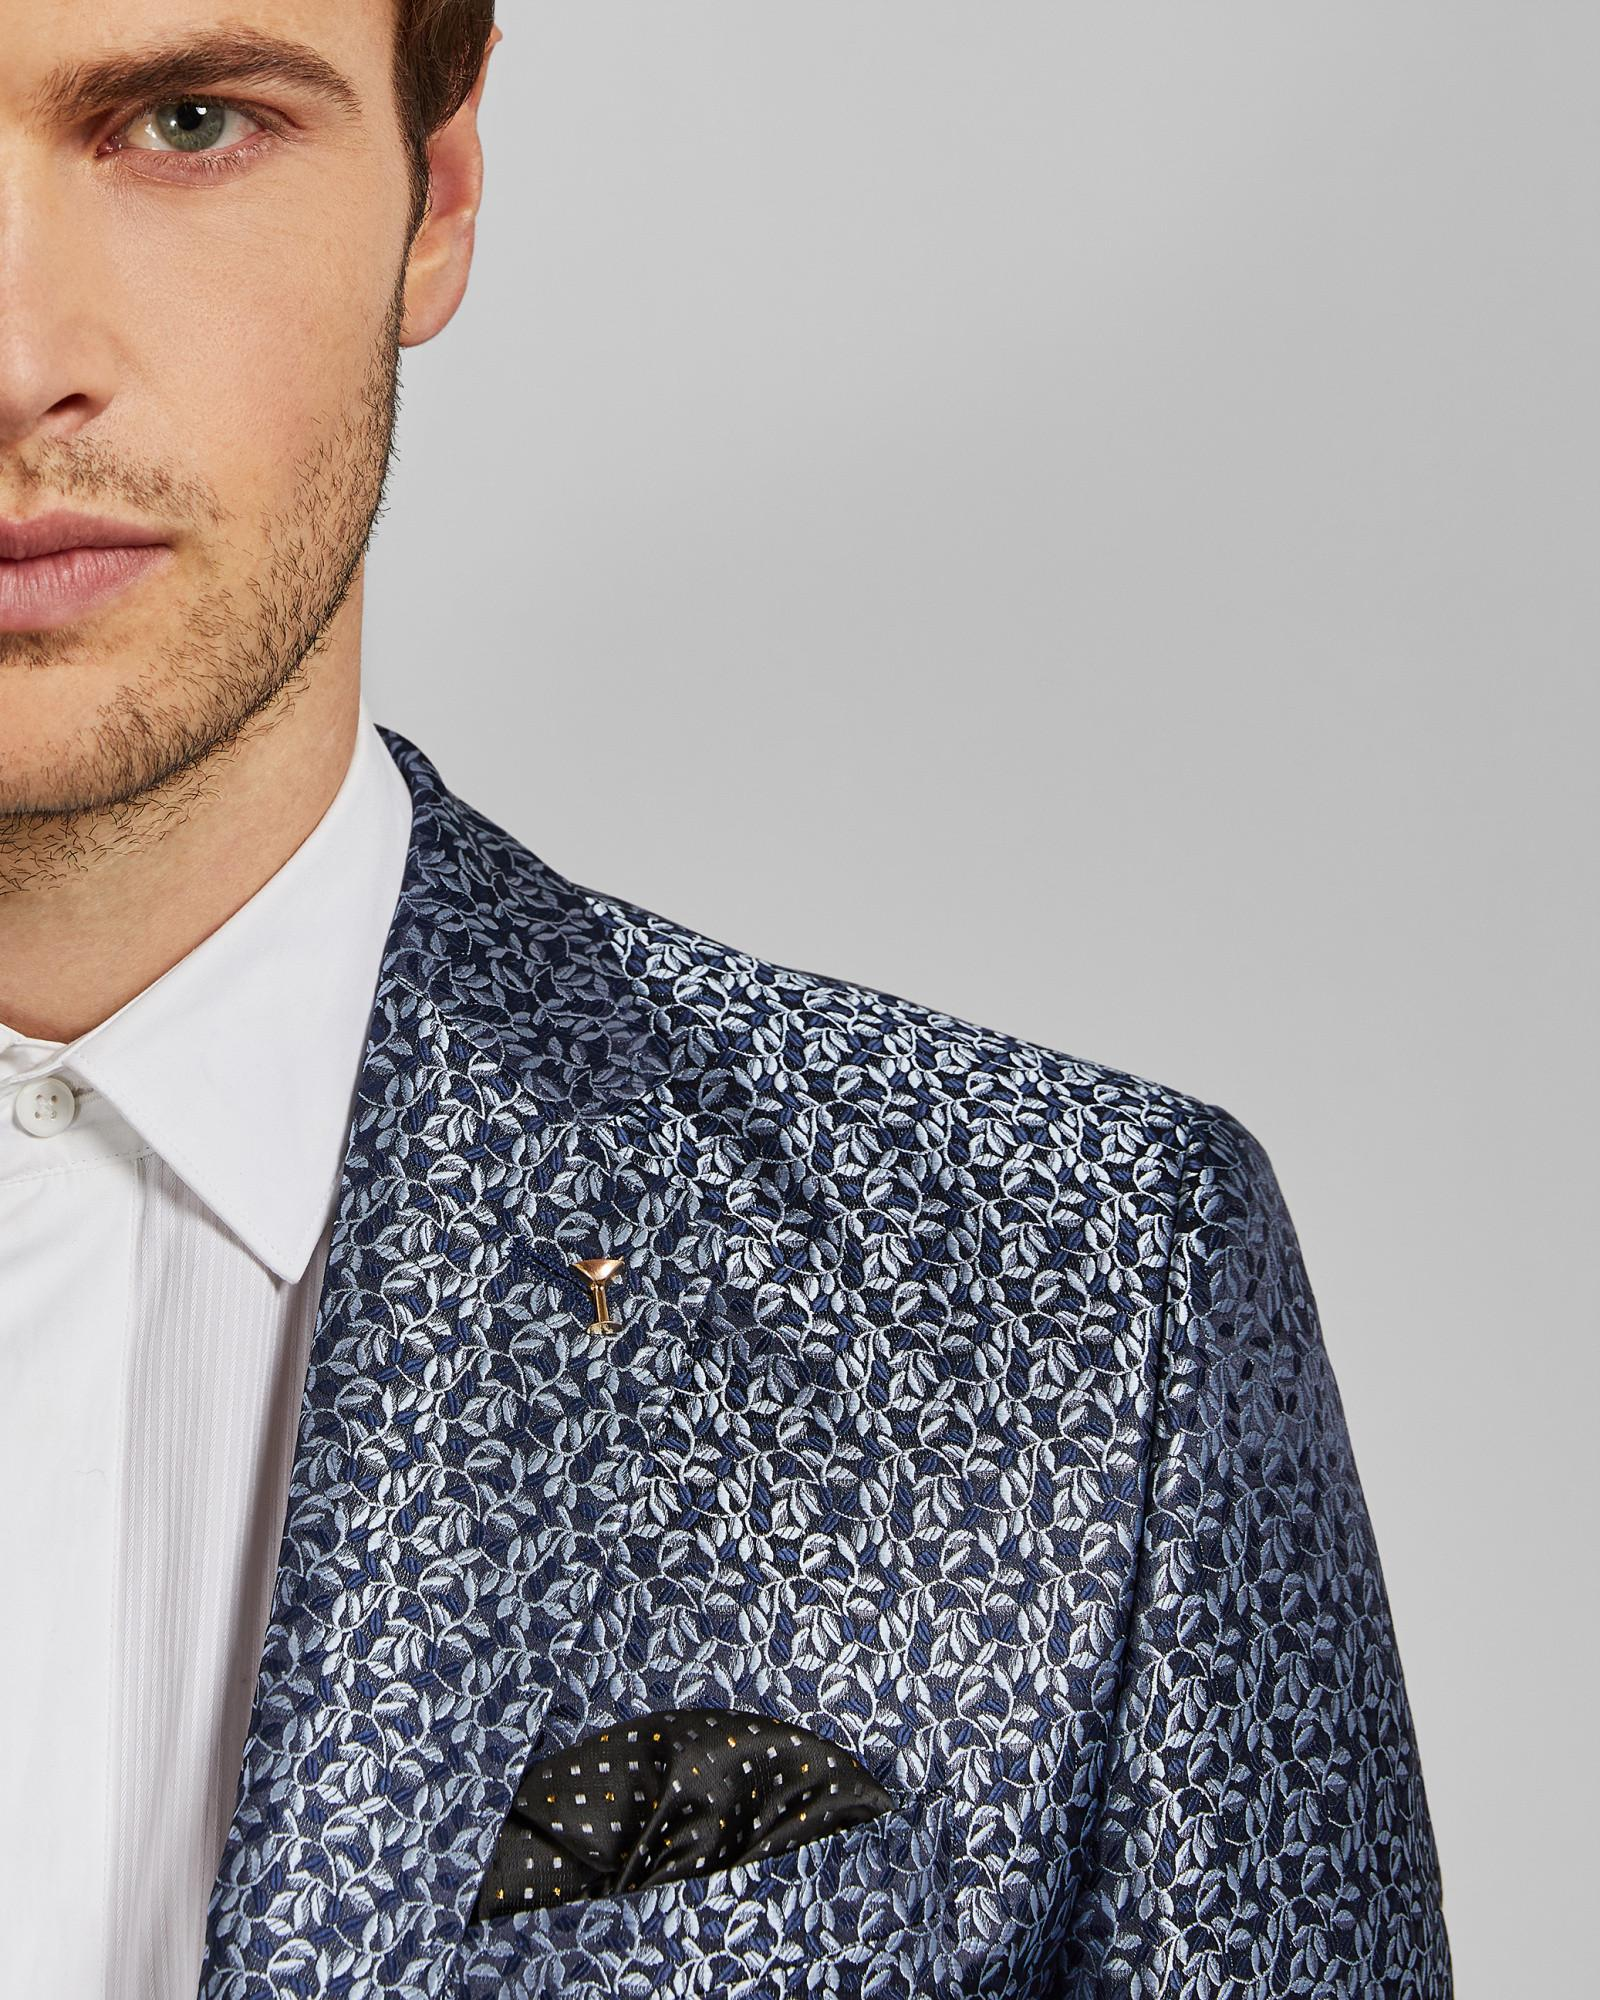 5776a1905 Lyst - Ted Baker Pashion Jacquard Jacket in Blue for Men